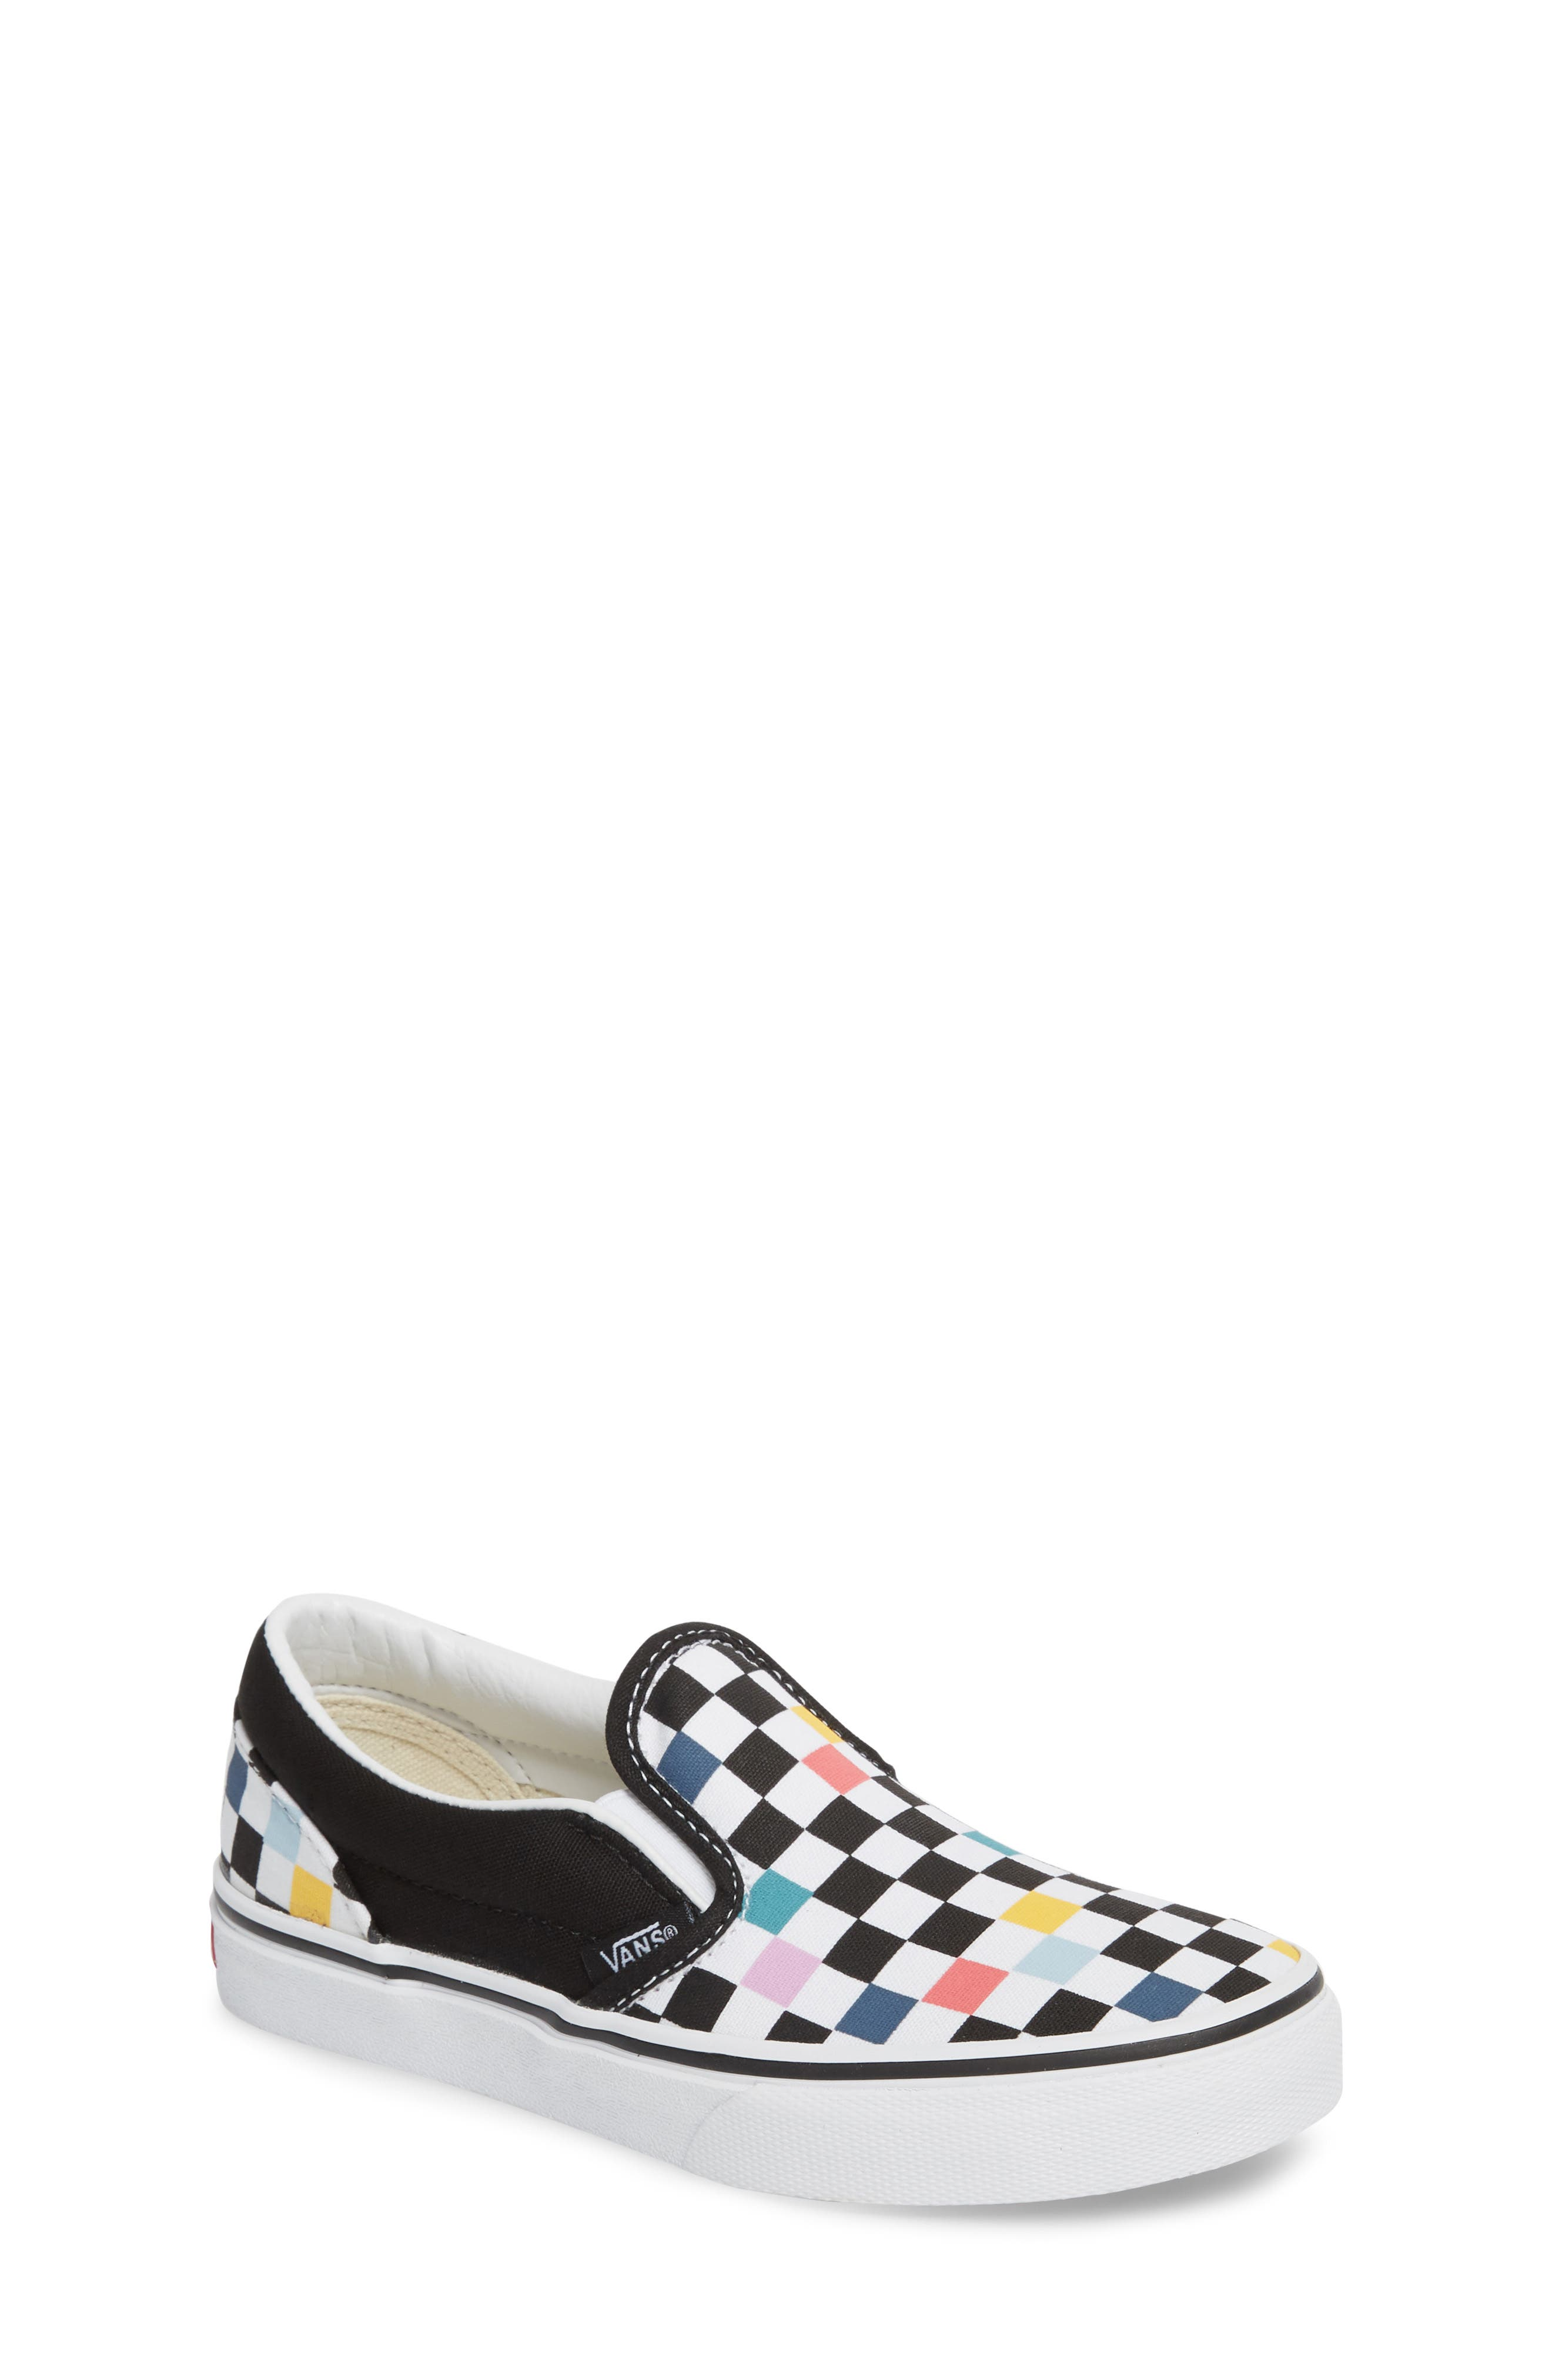 Party Check Slip-On Sneaker,                             Main thumbnail 1, color,                             Party Checker Multi/ Black